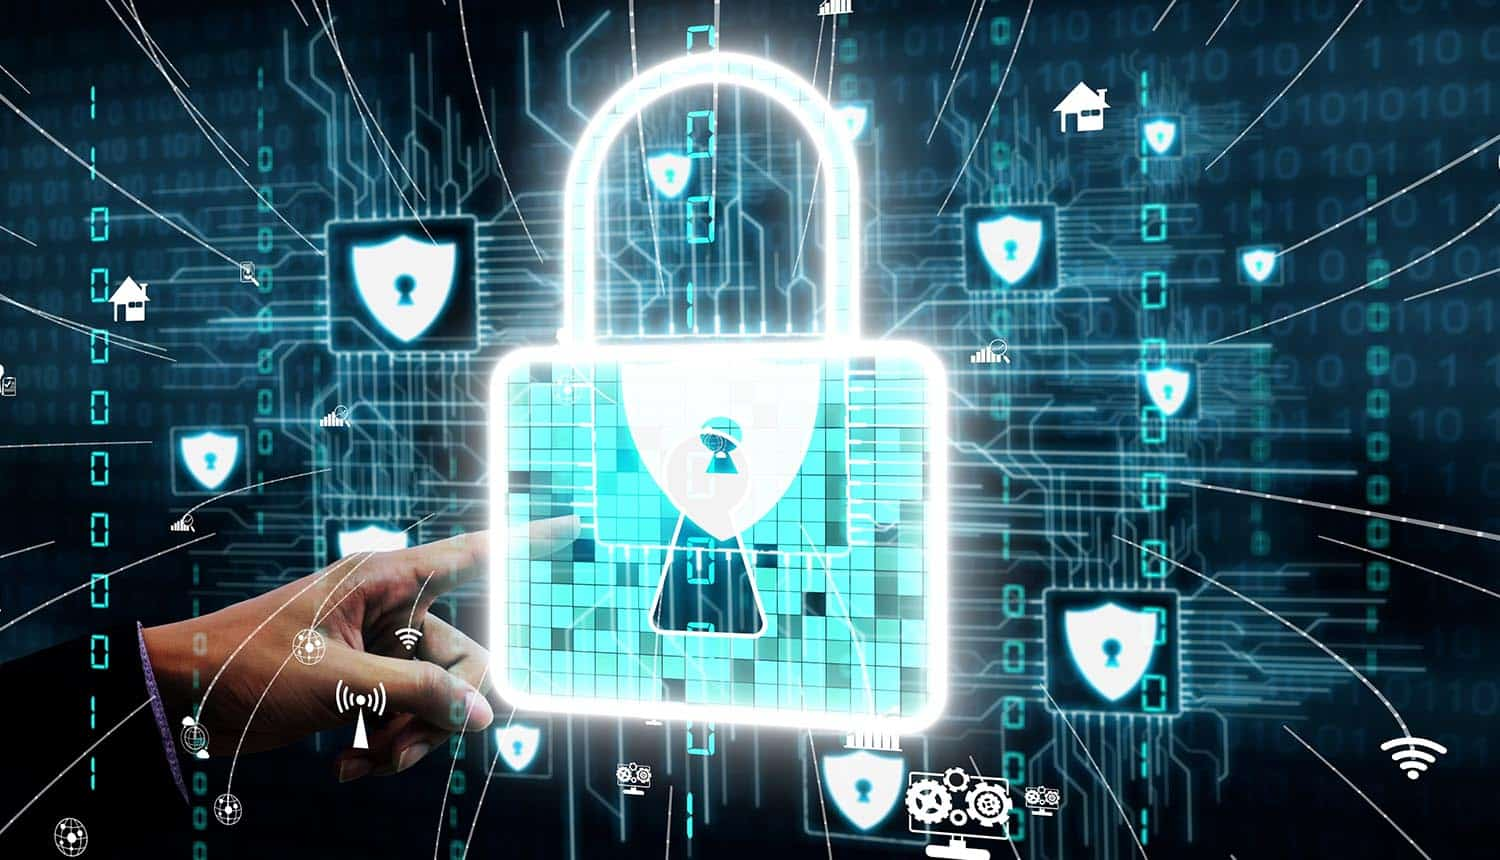 Virtual locks and shields against digital background showing cloud containers resulting in supply chain attack